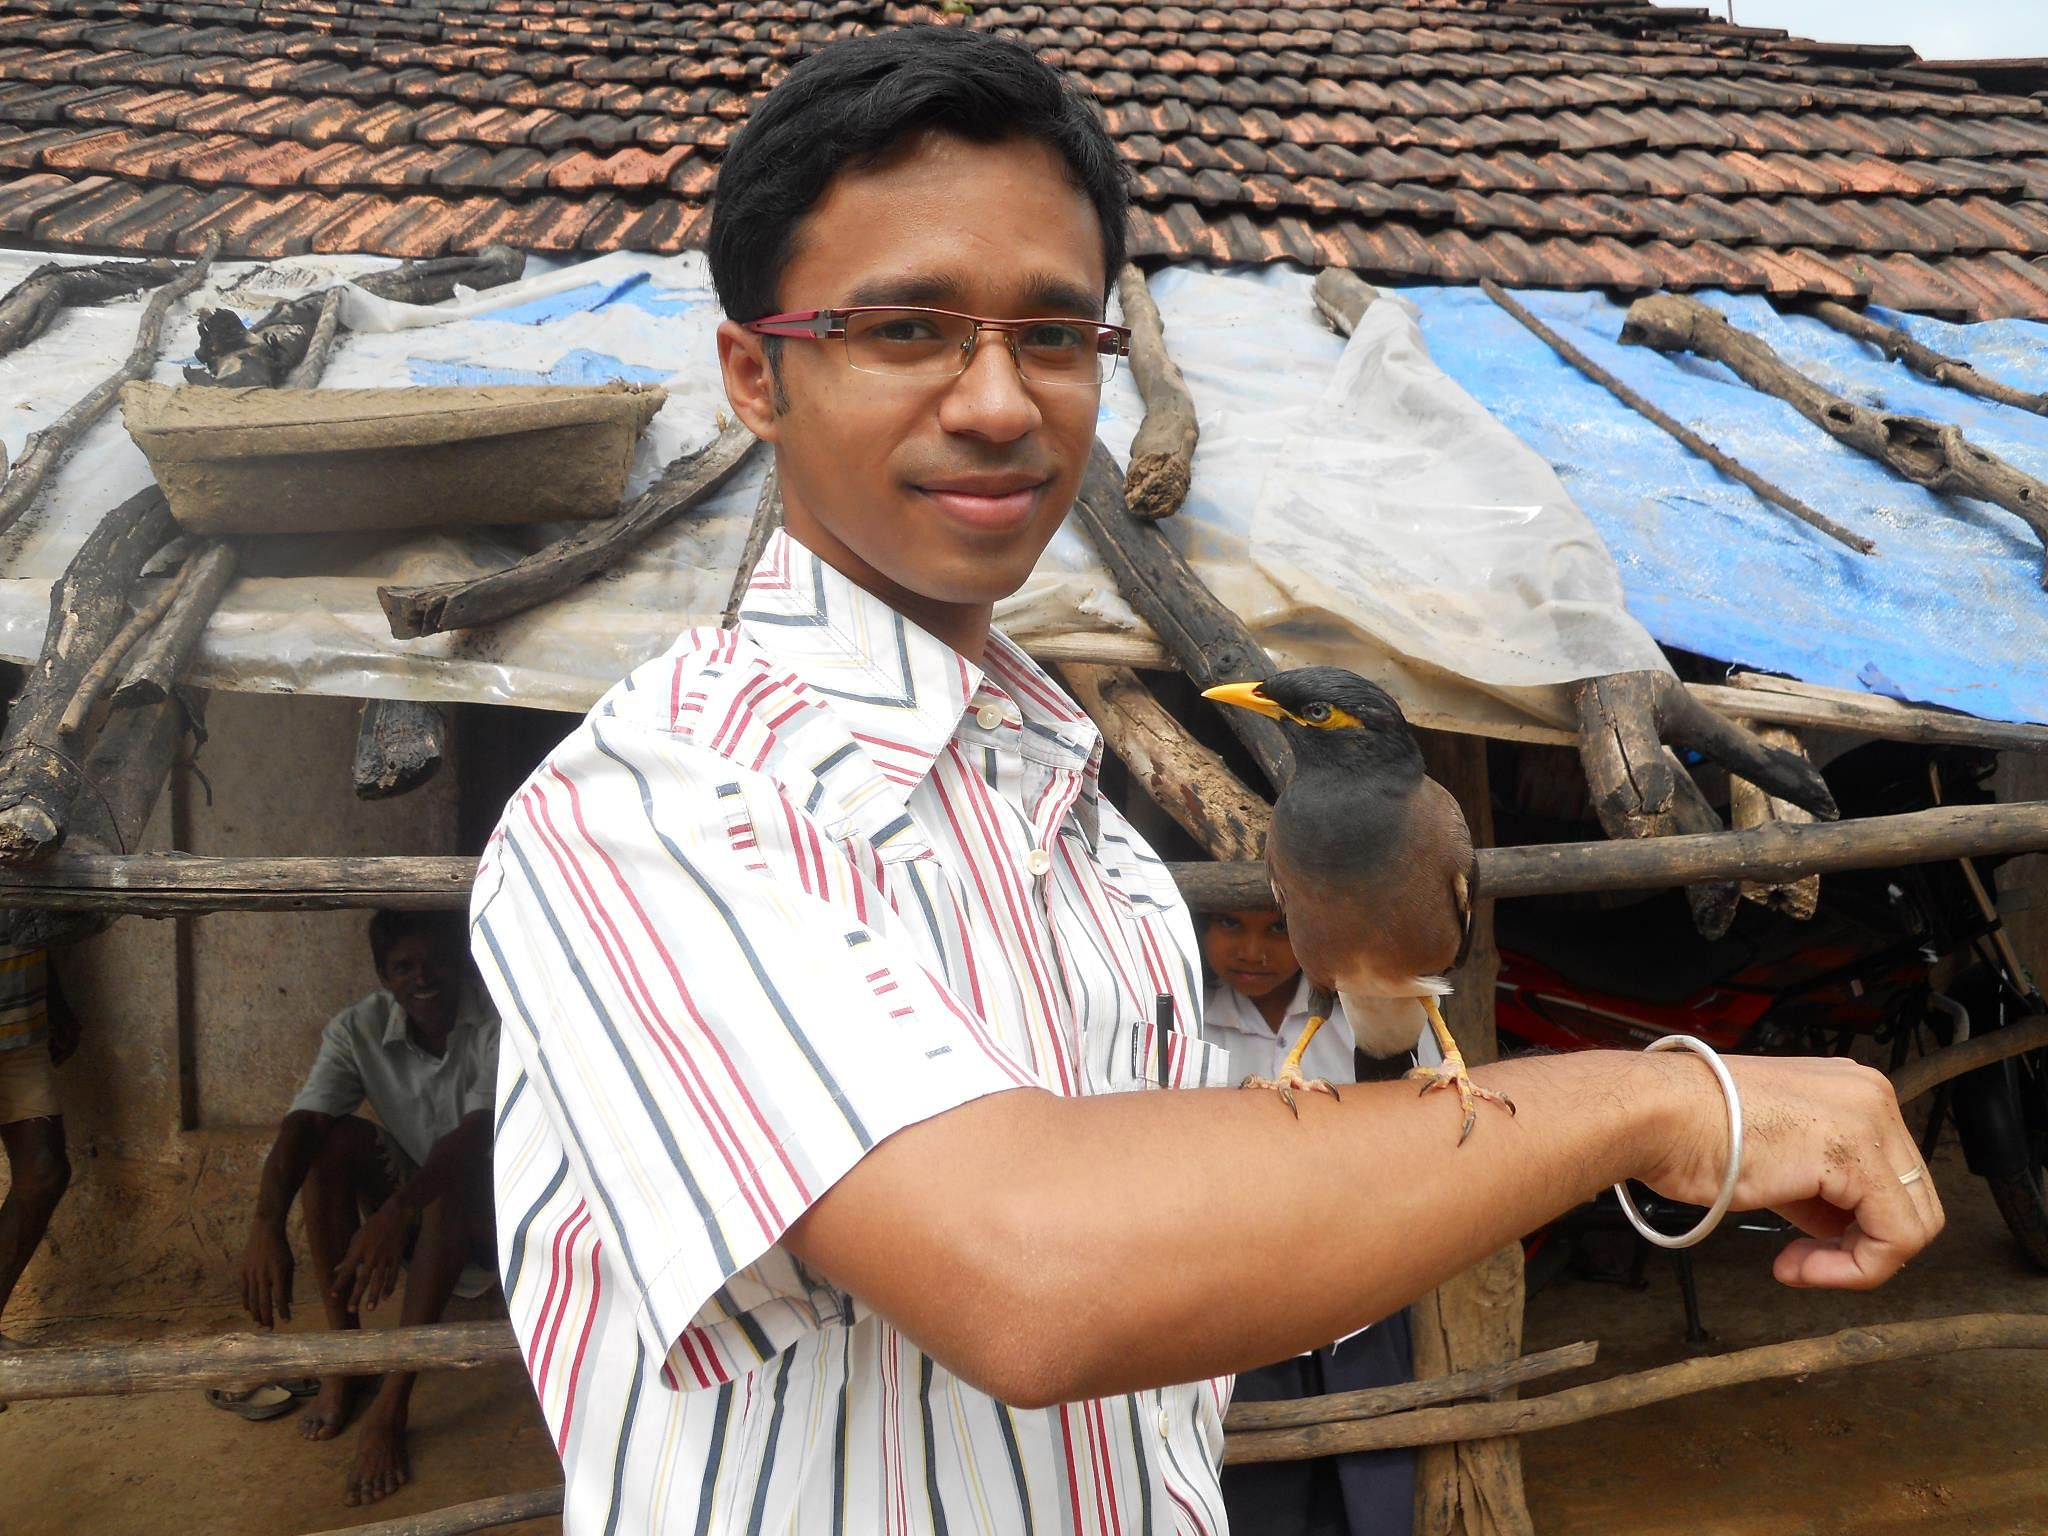 Life in the village has taught Sourabh many of life's invaluable lessons